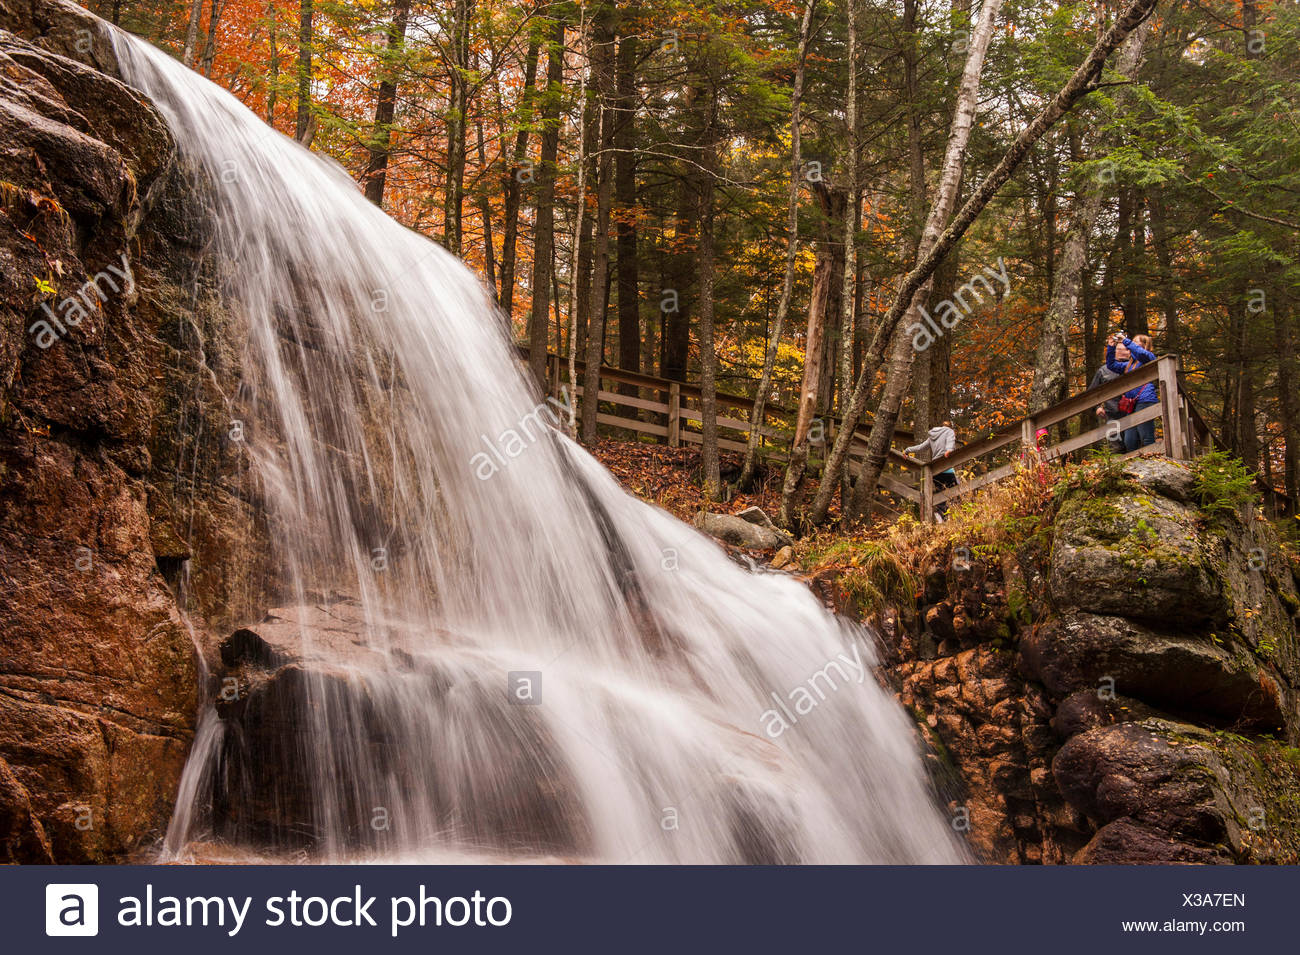 Tourists observing a scenic water fall at Flume Gorge. - Stock Image